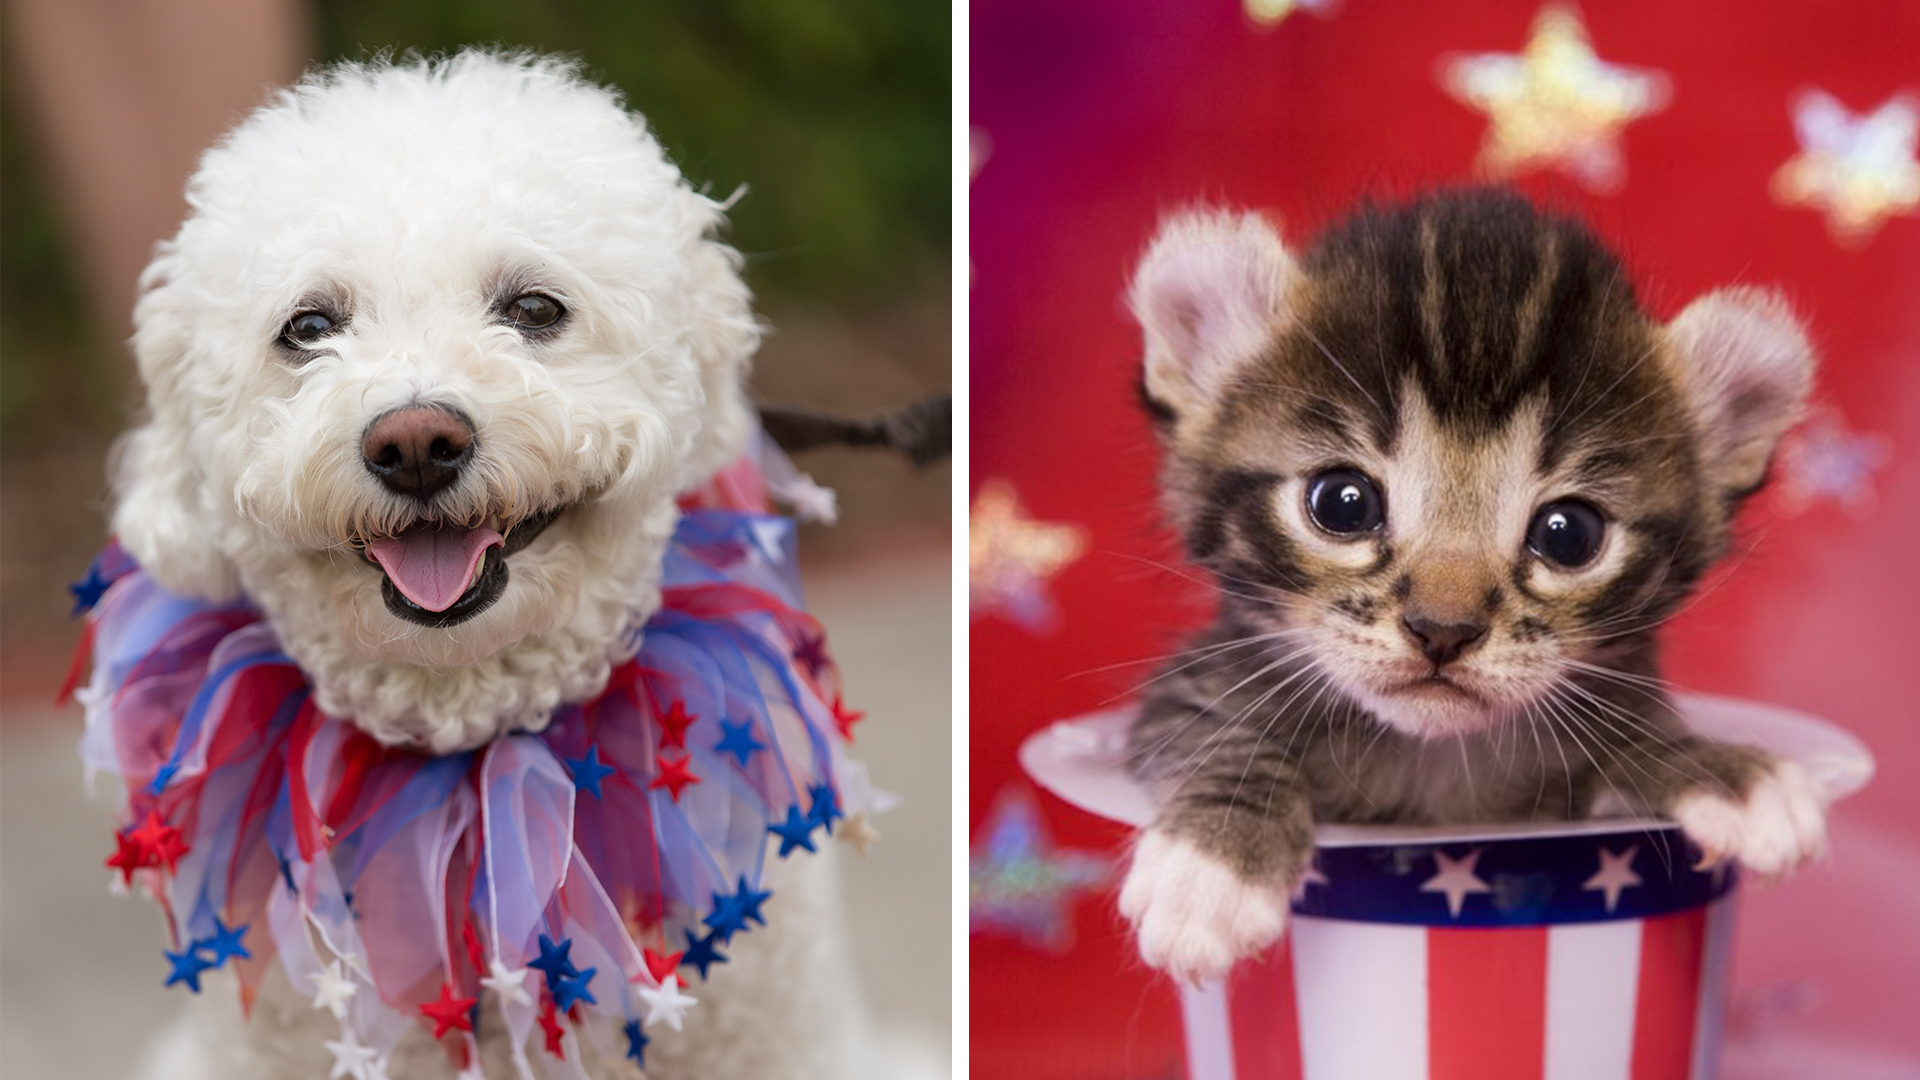 How to protect your pet during Fourth of July fireworks